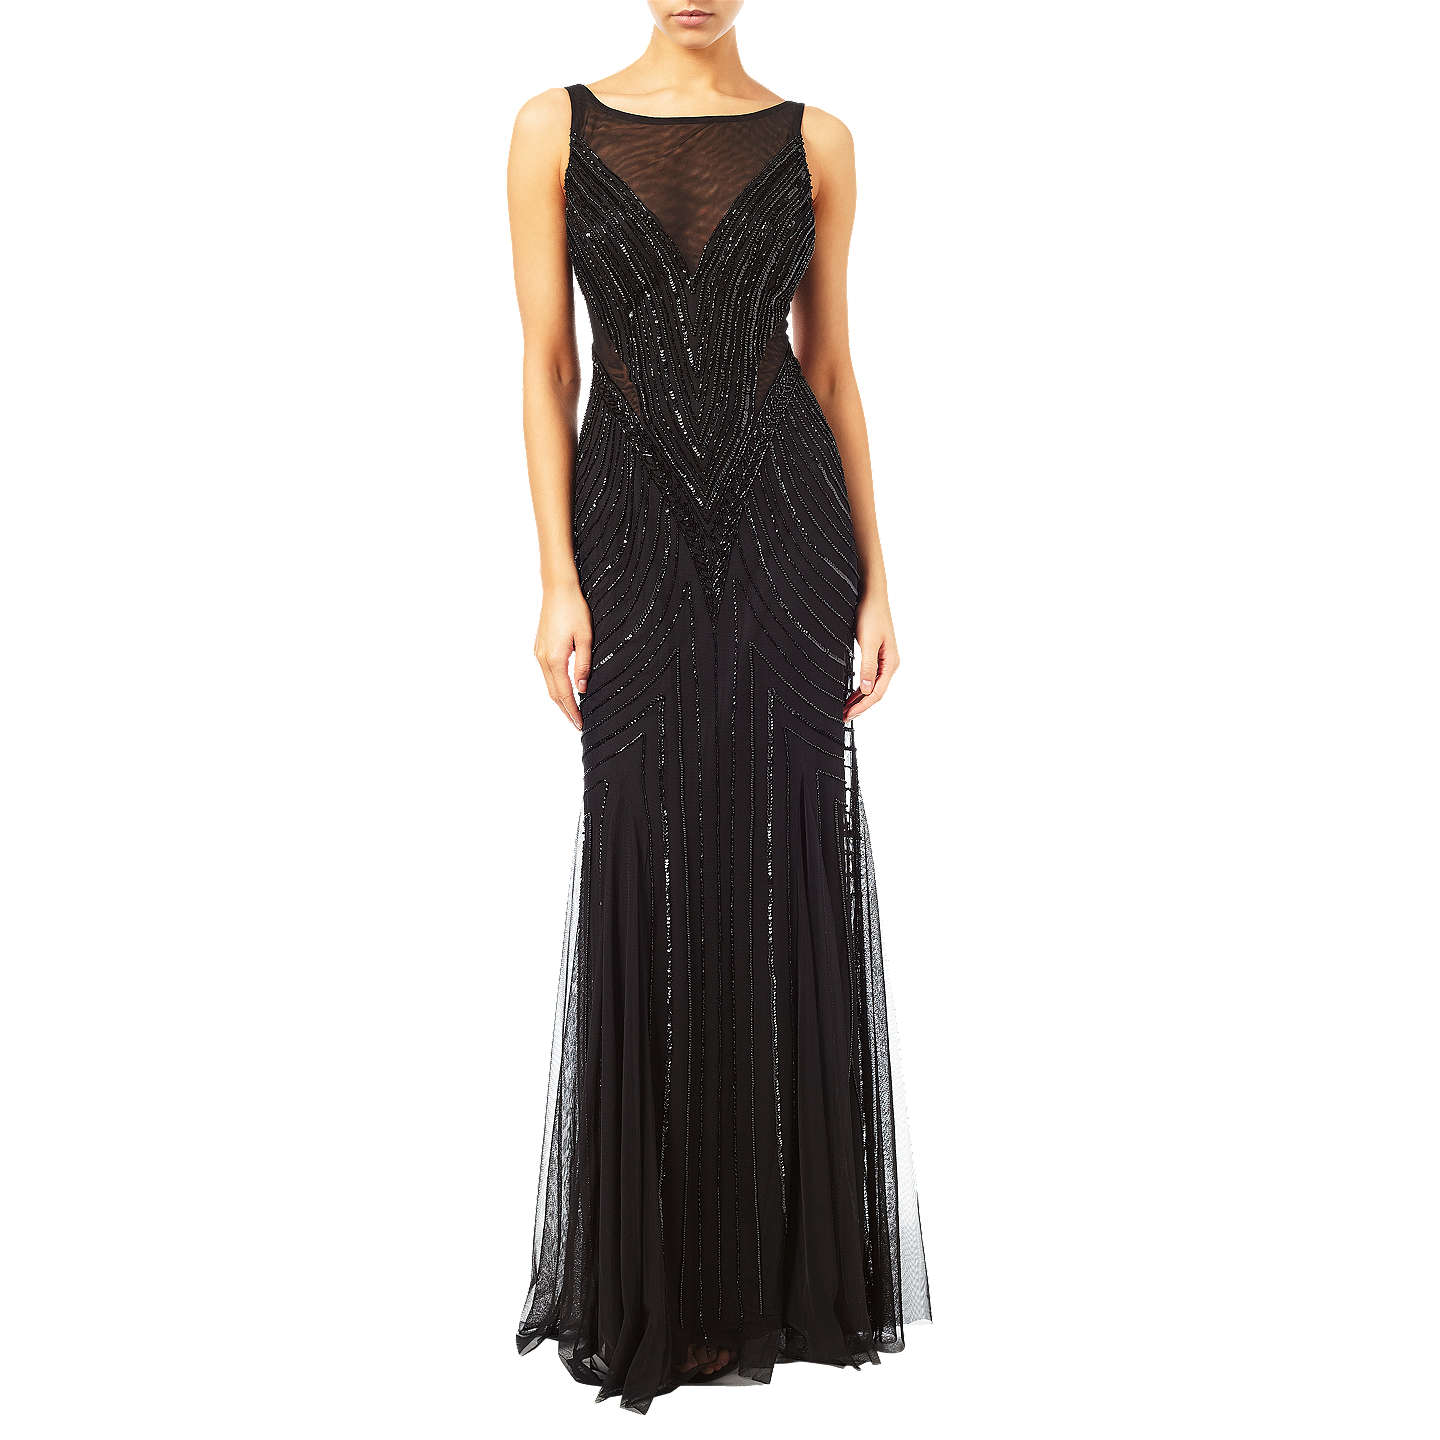 Adrianna Papell Sleeveless Beaded Mermaid Gown, Black at John Lewis